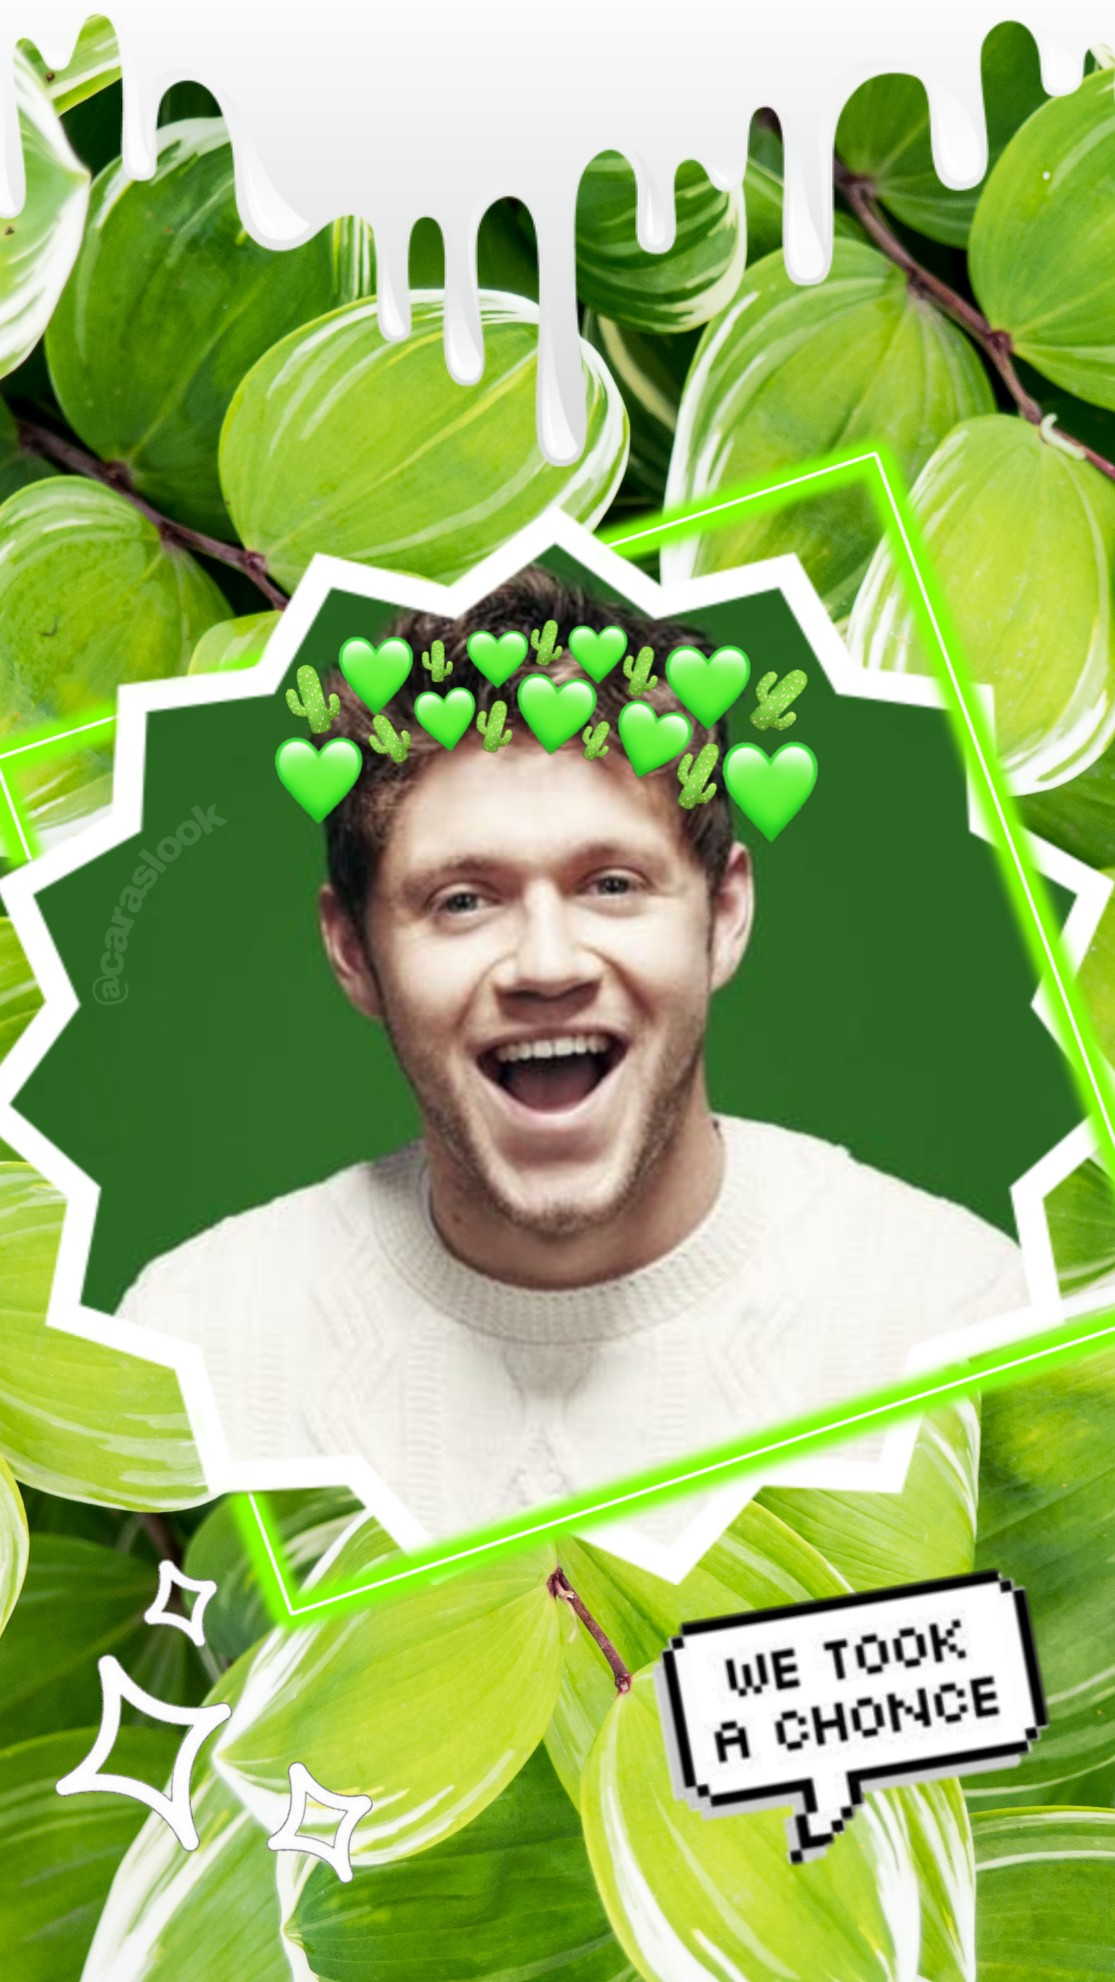 Niall Horan Green Aesthetic Wallpaper By Juli3569 On Deviantart